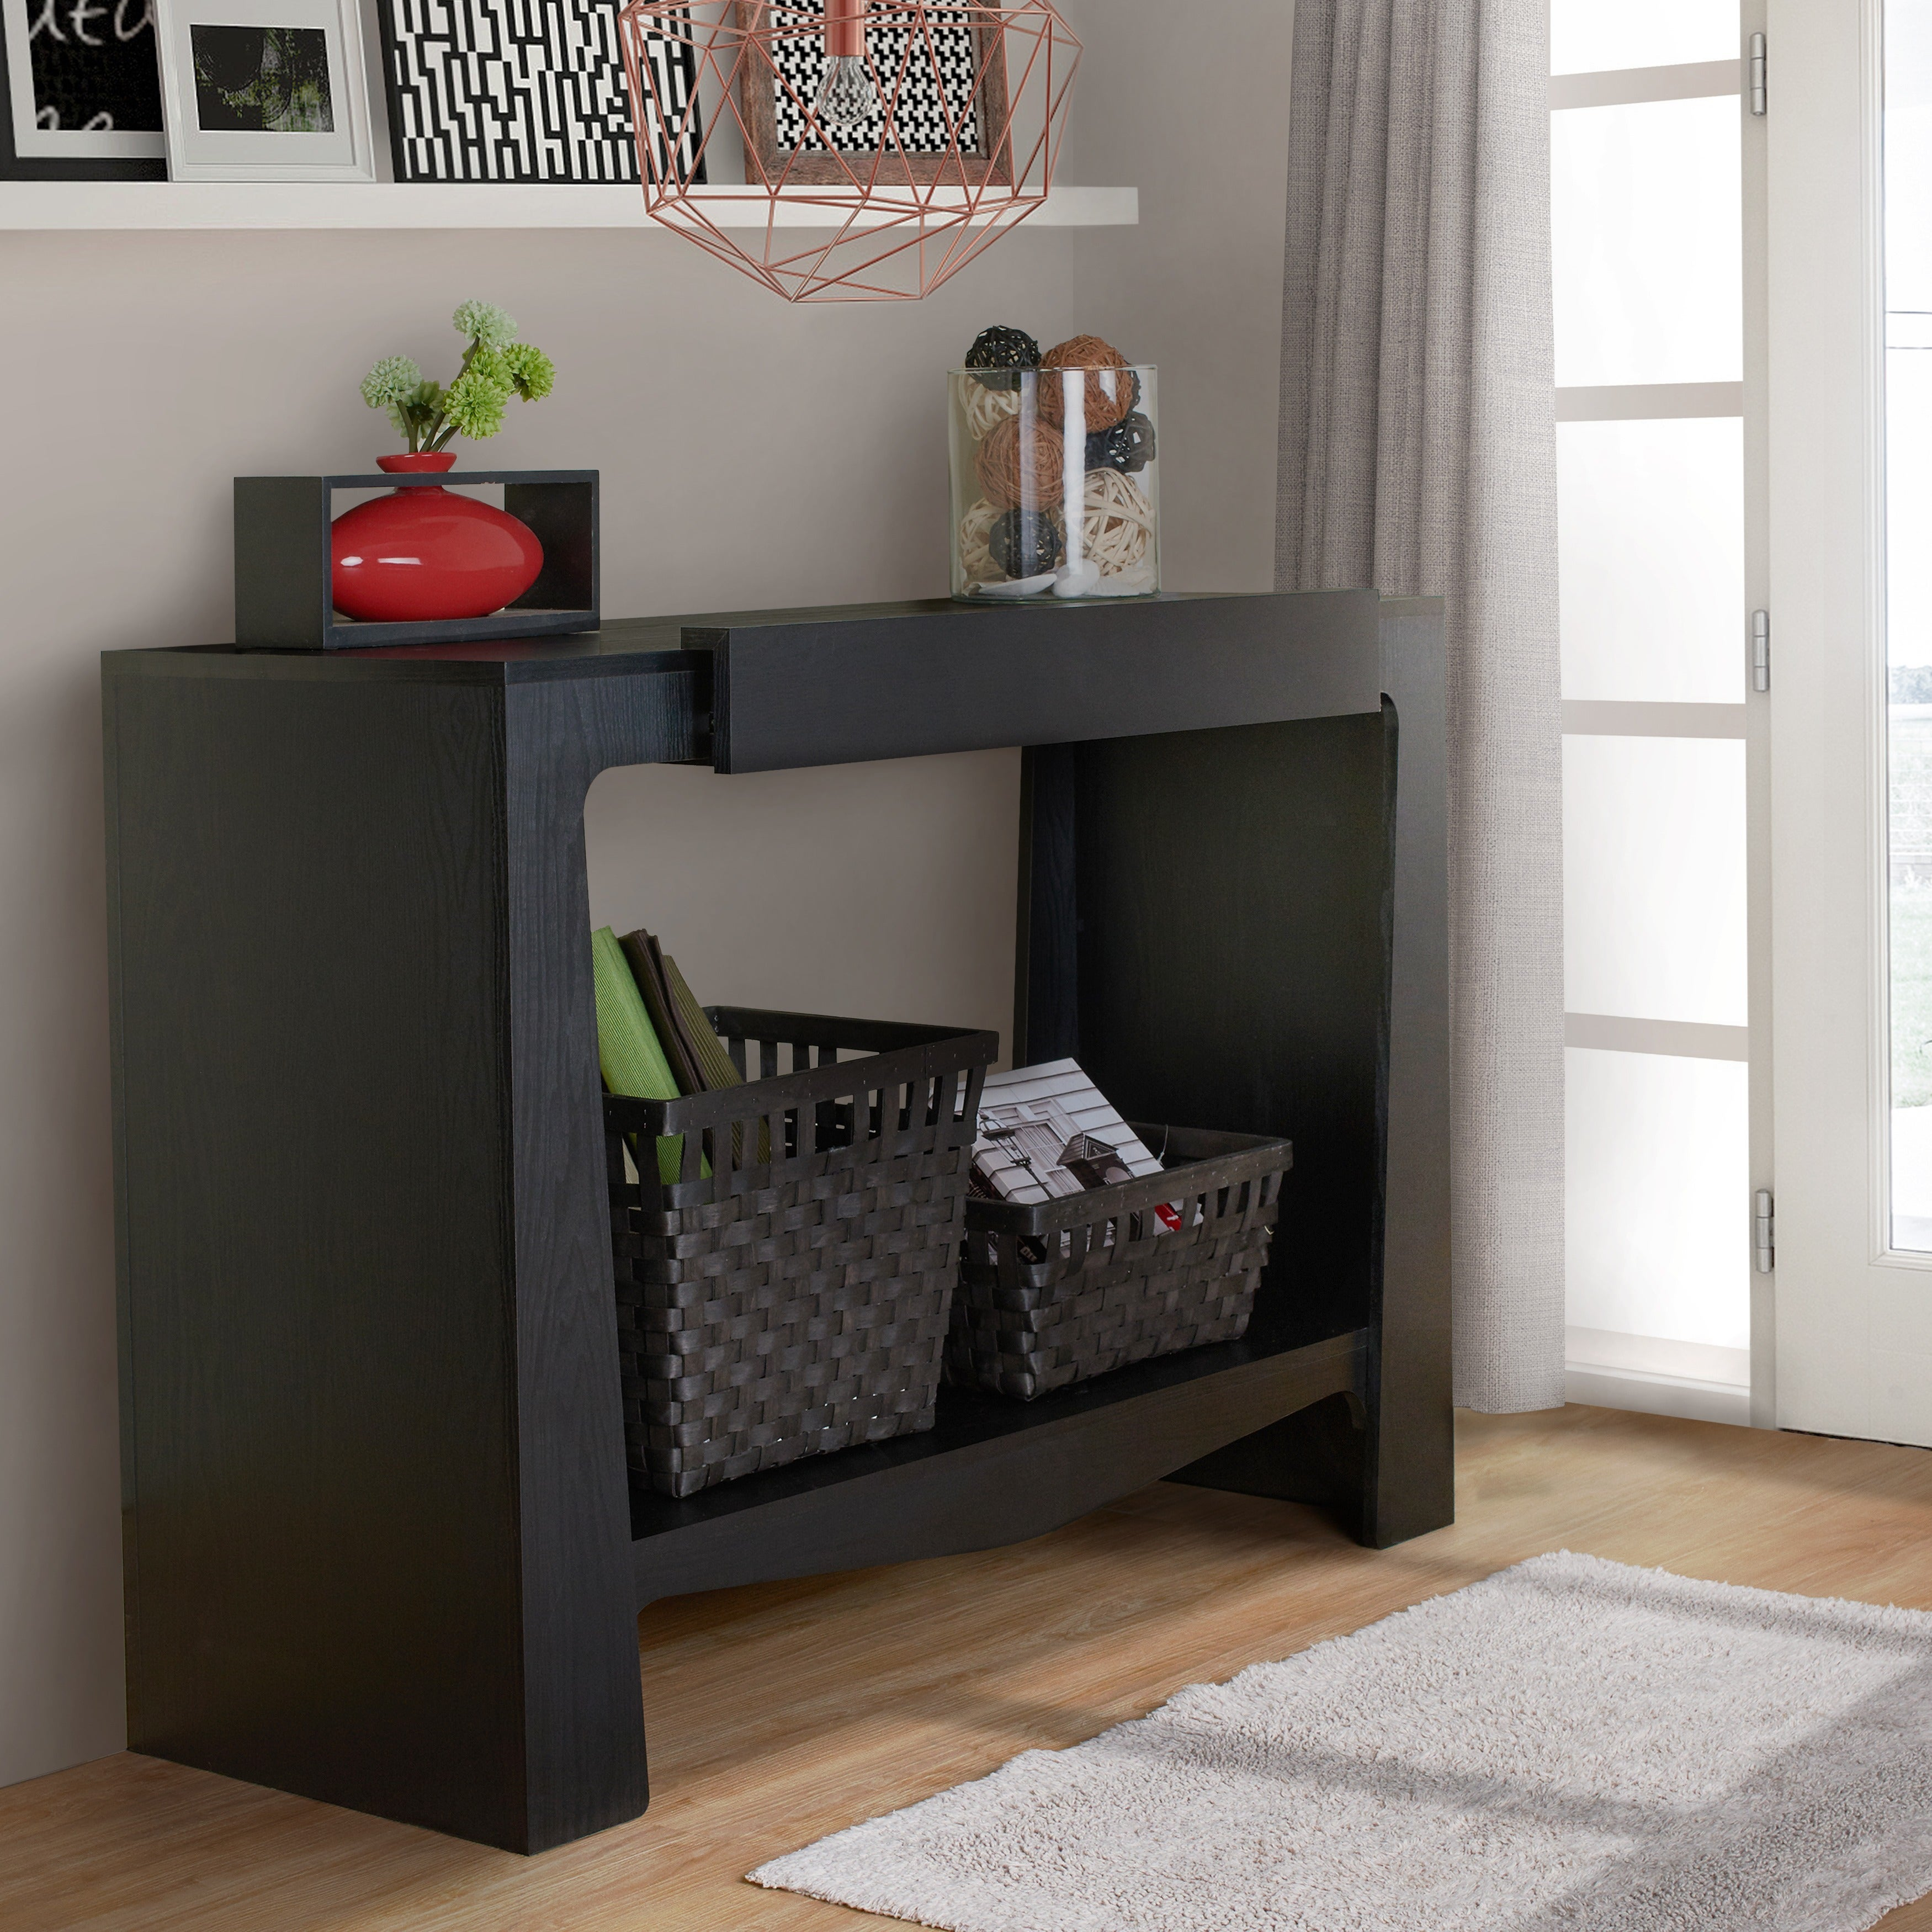 Shop furniture of america urbana modern hall entry way black console table on sale free shipping today overstock com 7847822